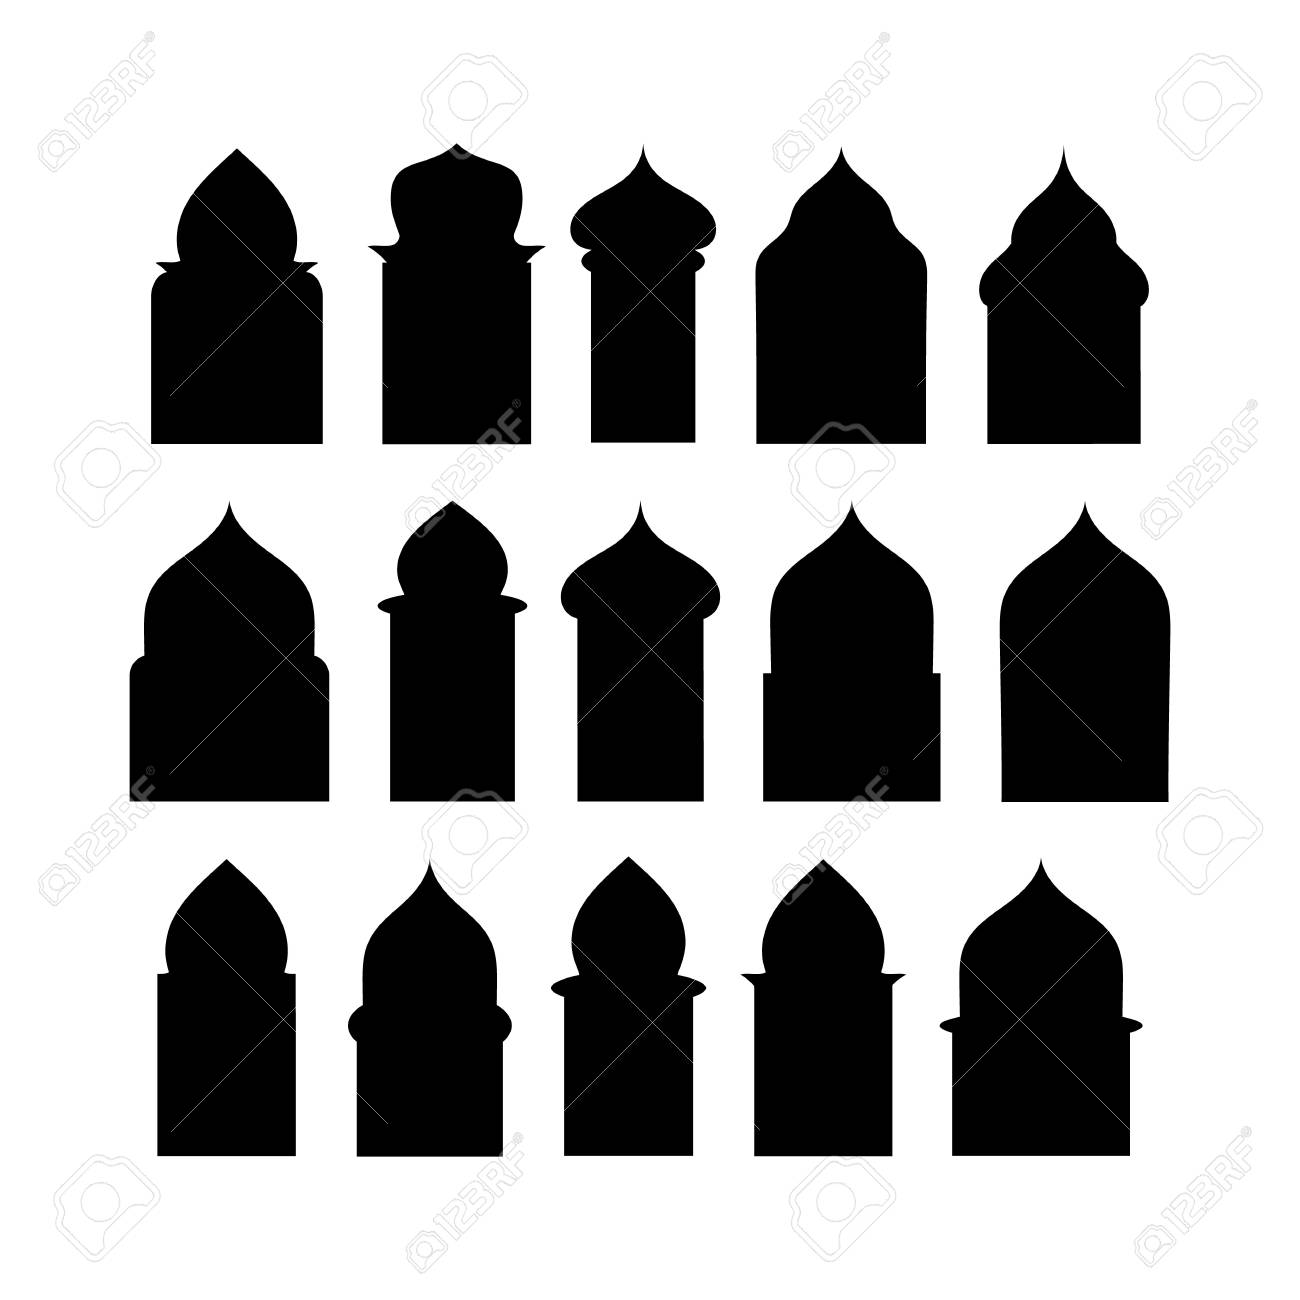 Vector set of 50 arabic doors and windows gate silhouette isolated on white background. Ramadan kareem shapes of windows and gates. Vector symbol traditional islamic arches - 102509527